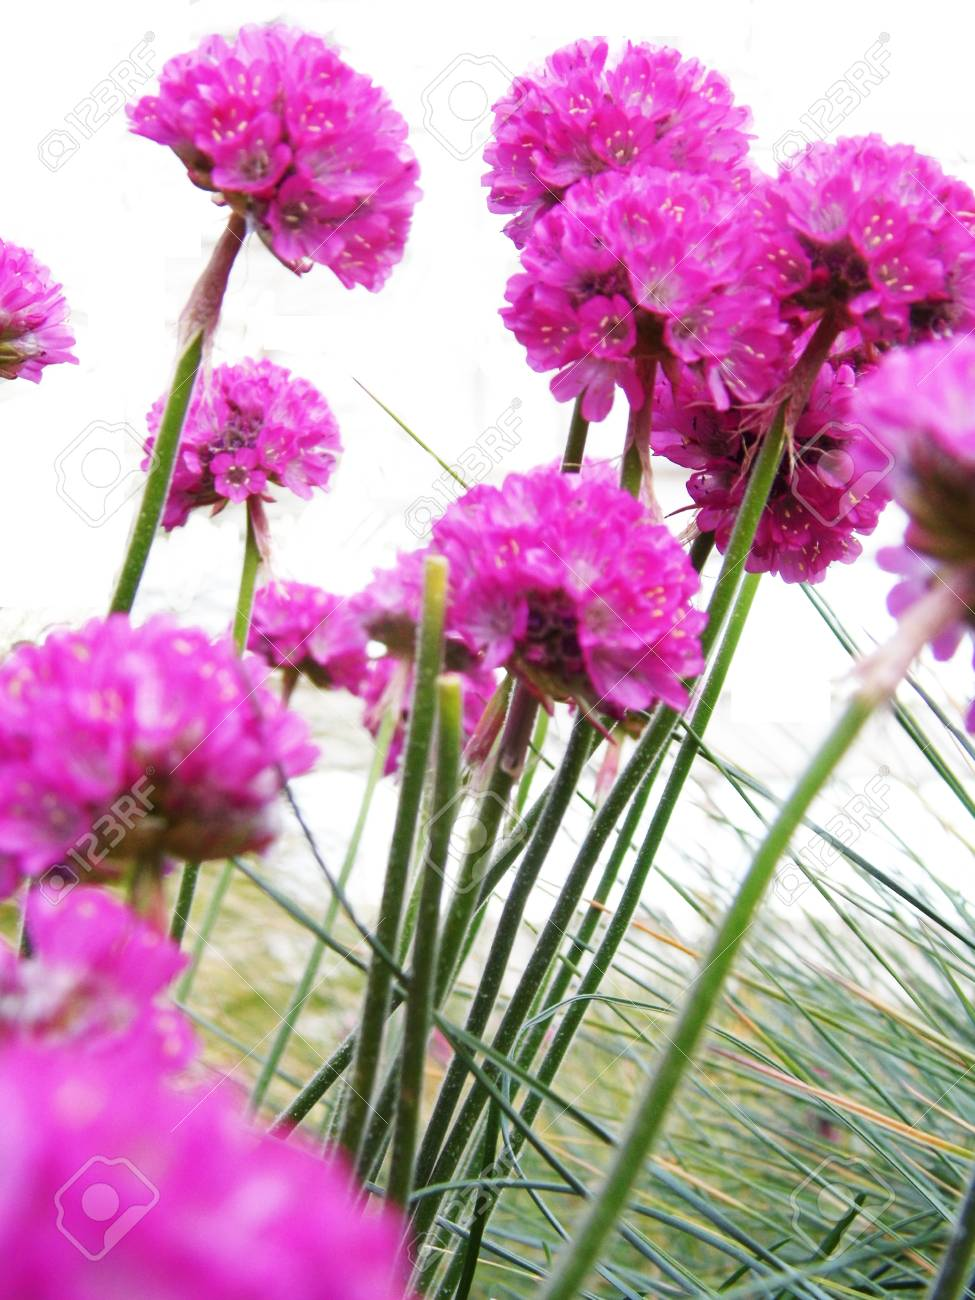 Several pink allium flowers in a garden border stock photo picture several pink allium flowers in a garden border stock photo 92526649 mightylinksfo Image collections